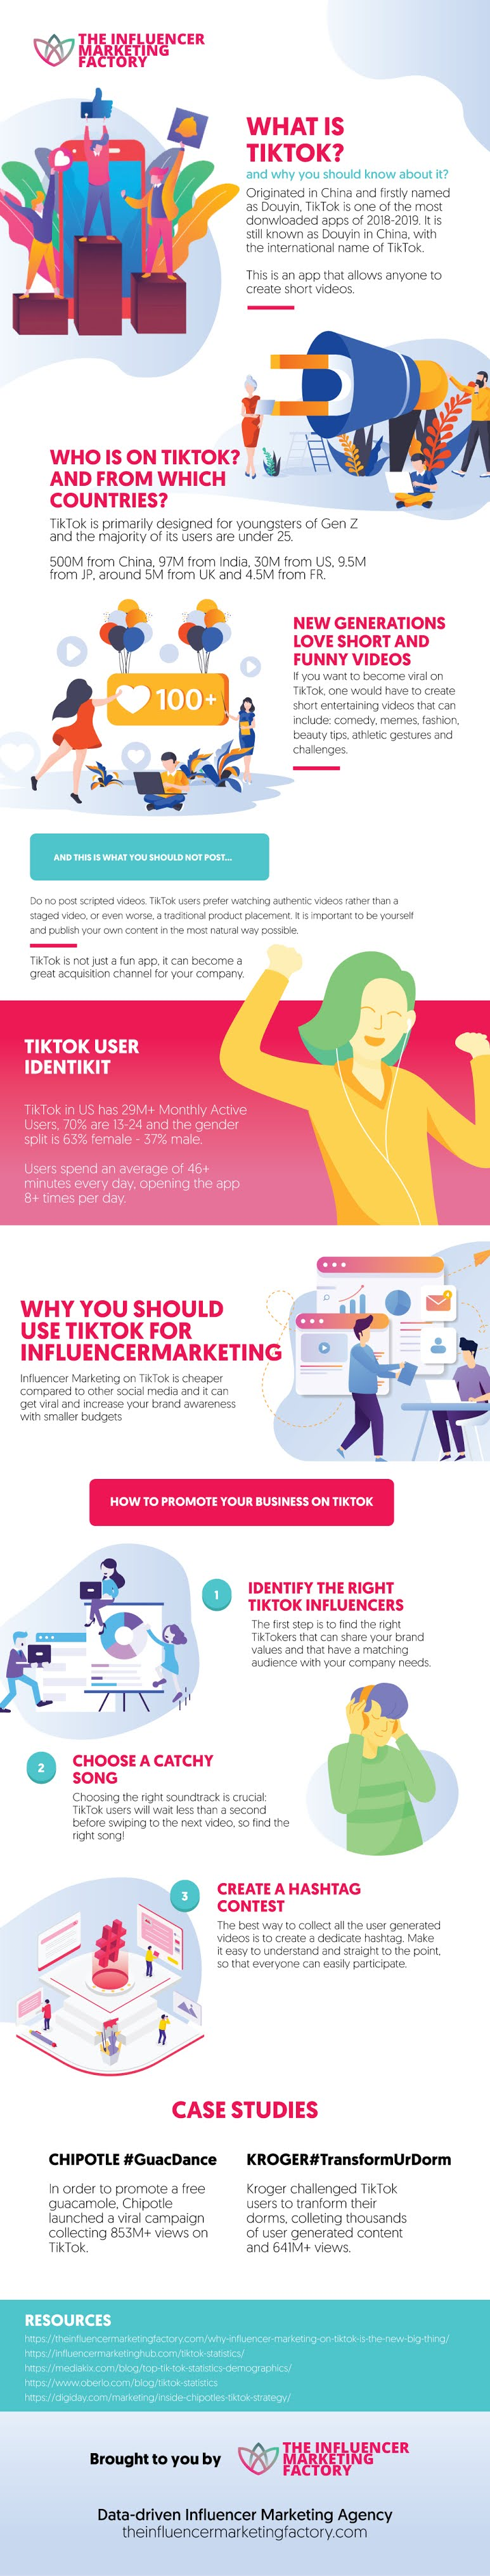 The 5 Funniest Trends On TikTok #infographic #TikTok #infographics #Entertainment #Funniest Trends